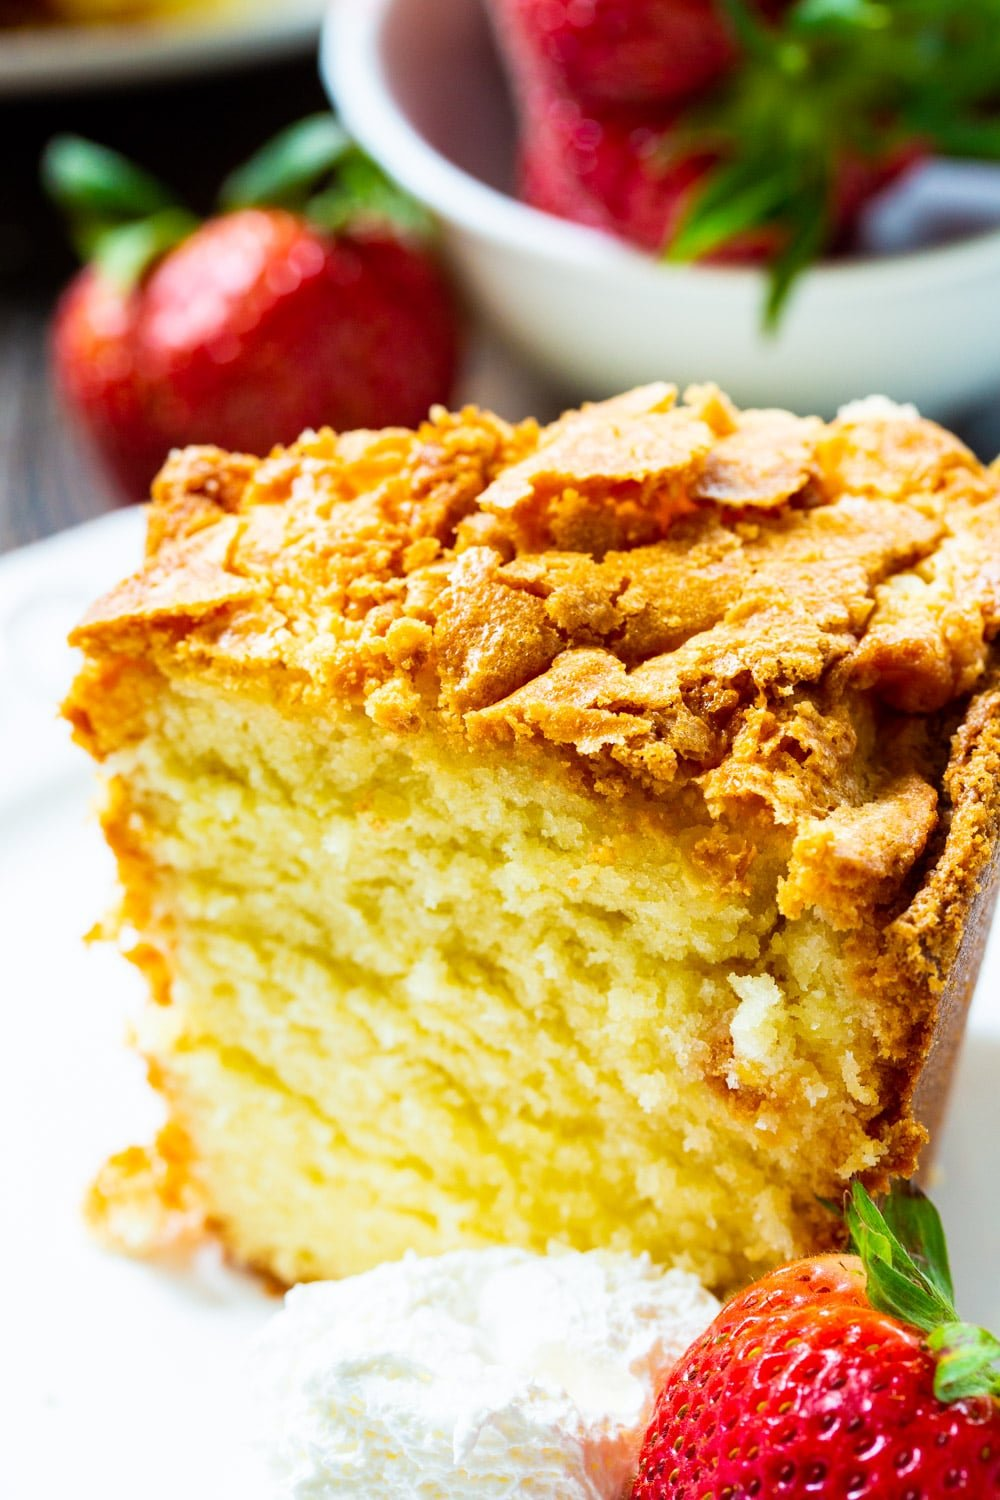 Slice of Classic Southern Pound Cake with fresh strawberries.